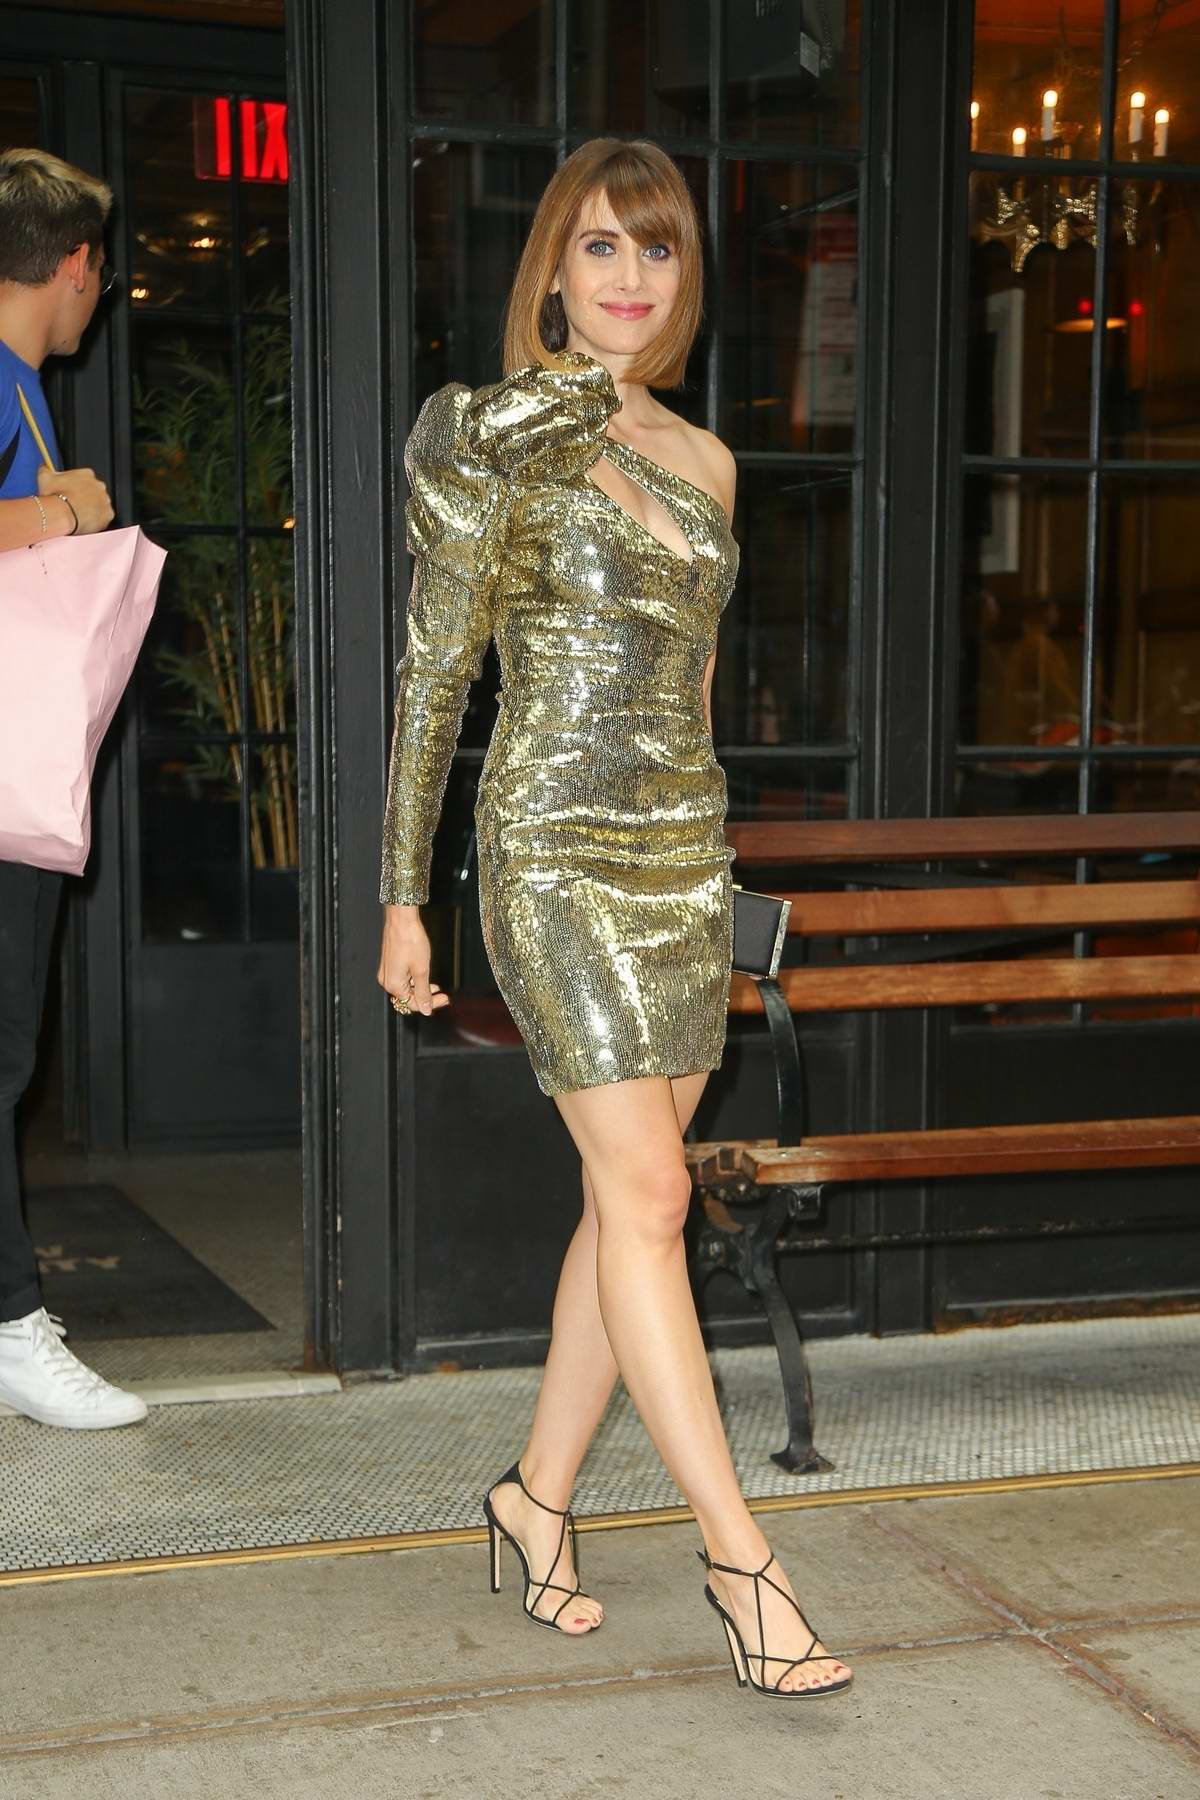 Alison Brie shimmers in gold as she leaves The Ludlow Hotel in New York City